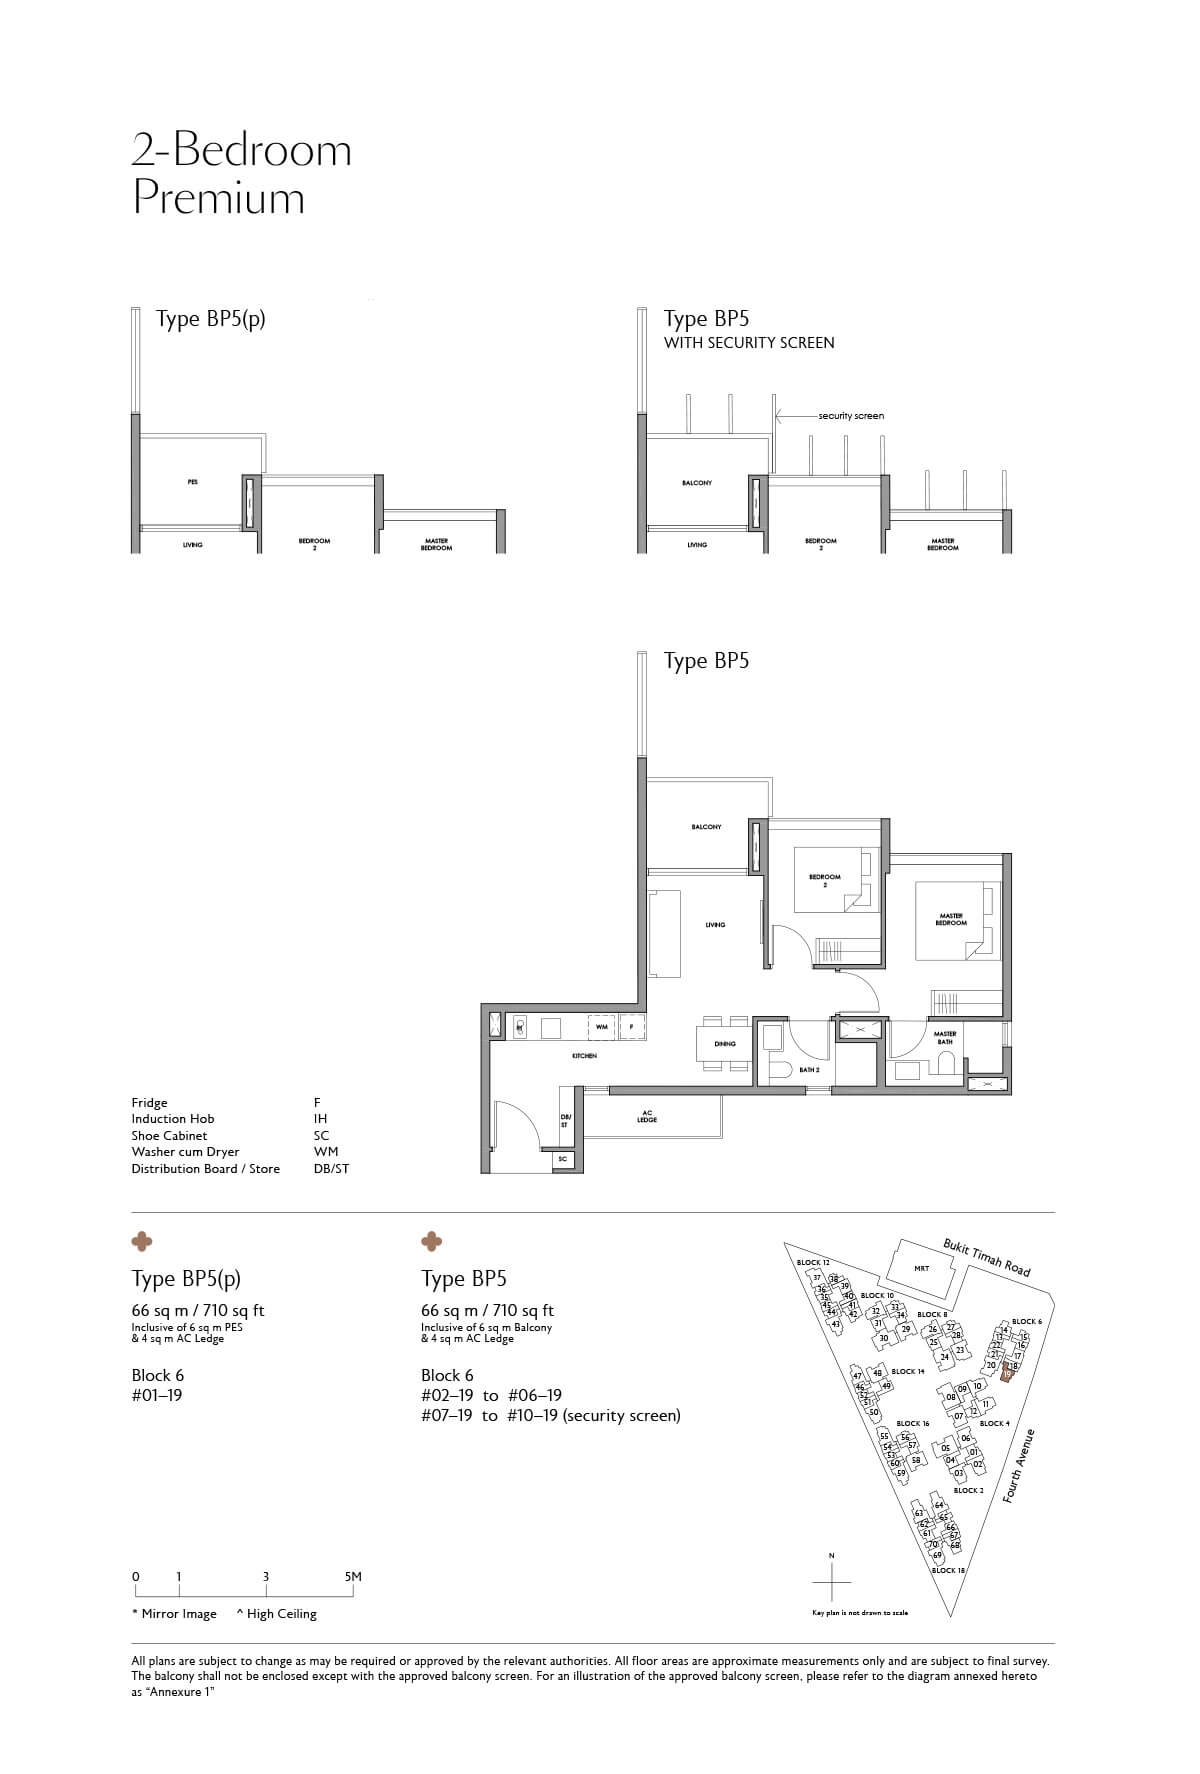 Fourth Avenue Residences Floor Plan 2 Bedroom Premium Type BP5